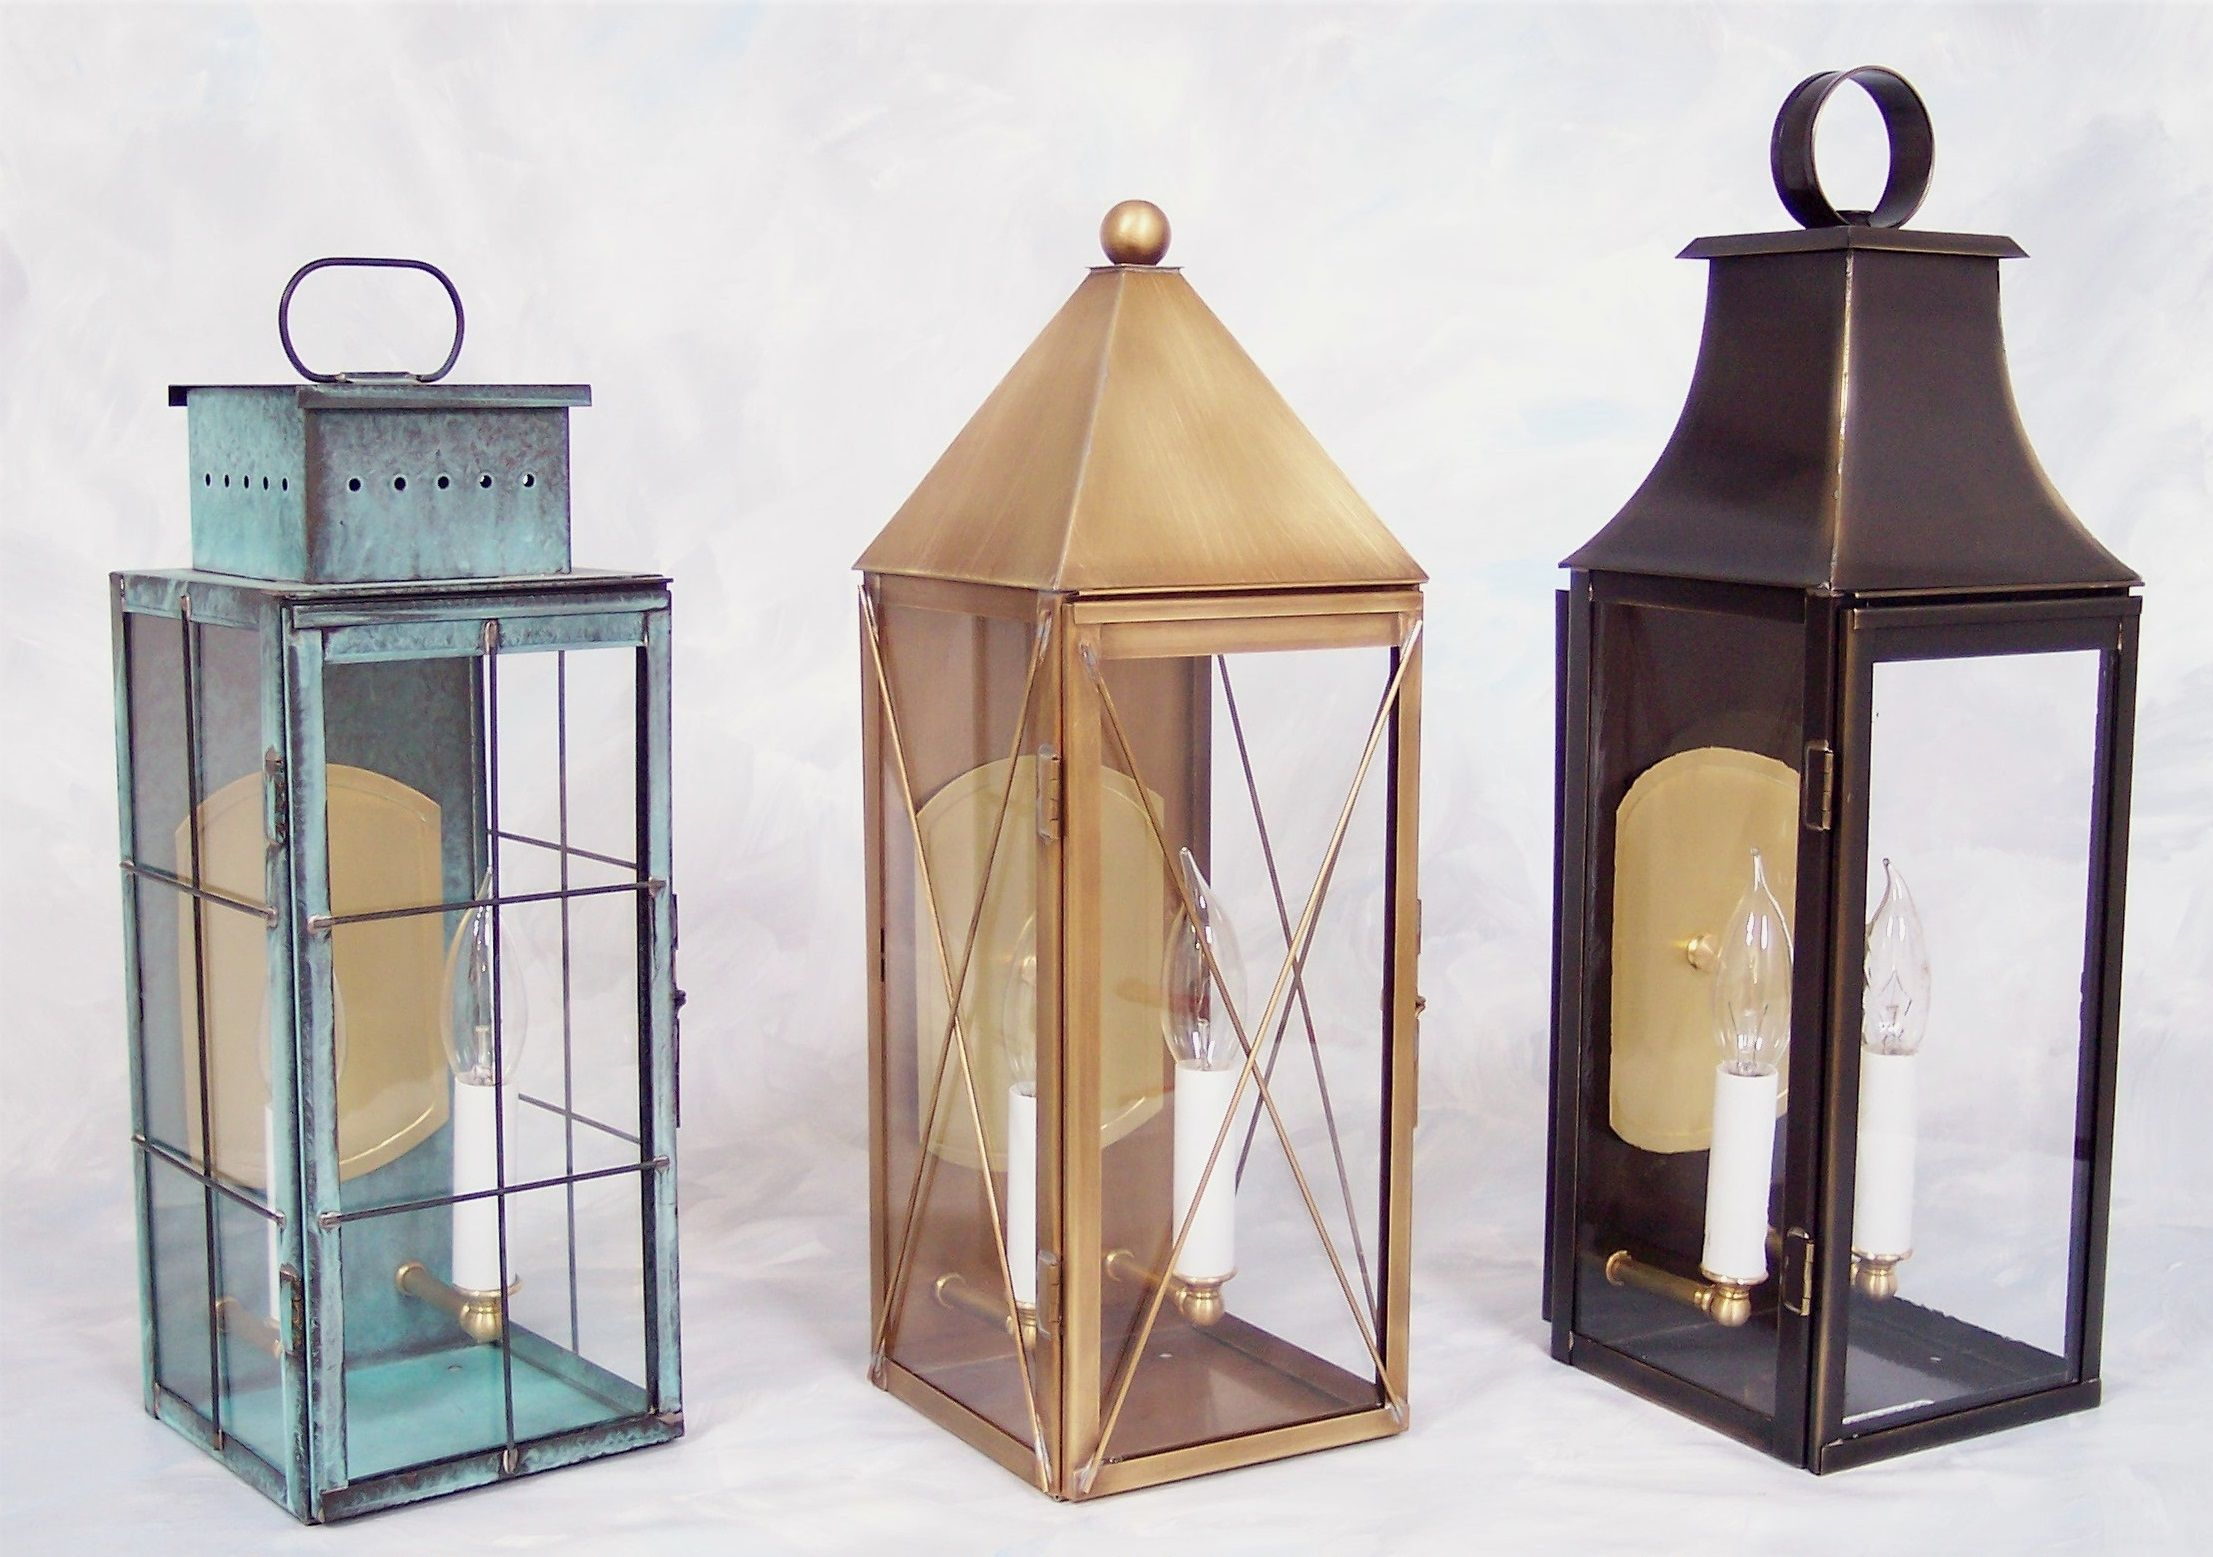 Brass Traditions Wall Sconces 471 In Verde Green 571 In Antique Brass 1071 In Antique Bronze Brasstradi Outdoor Wall Lantern Wall Lights Outdoor Lighting